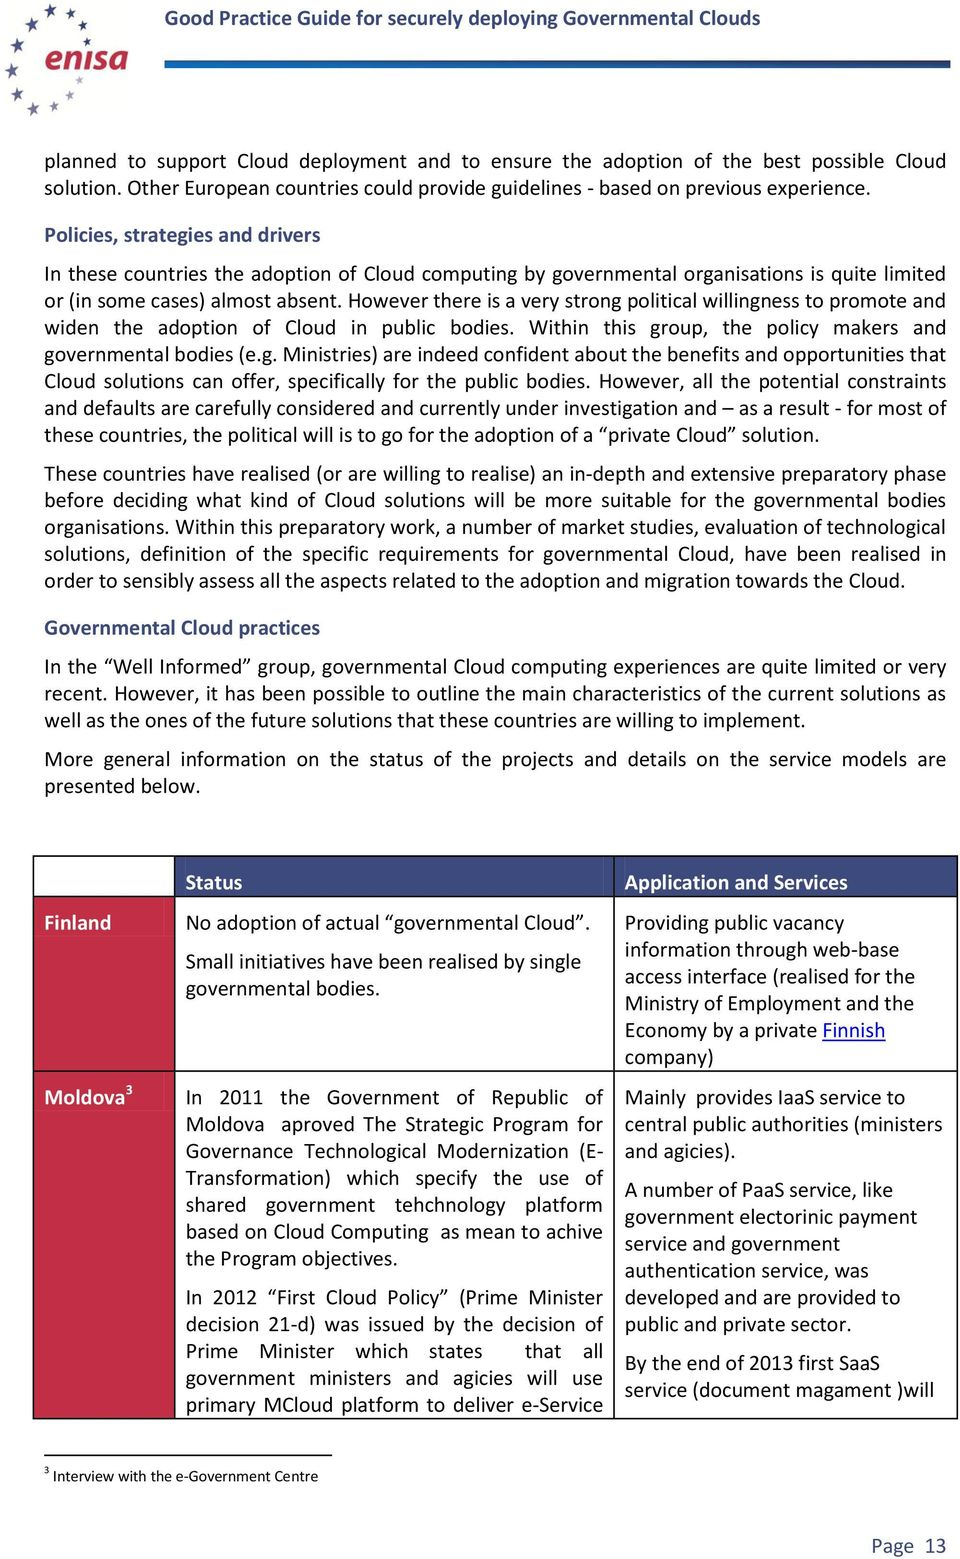 However there is a very strong political willingness to promote and widen the adoption of Cloud in public bodies. Within this group, the policy makers and governmental bodies (e.g. Ministries) are indeed confident about the benefits and opportunities that Cloud solutions can offer, specifically for the public bodies.